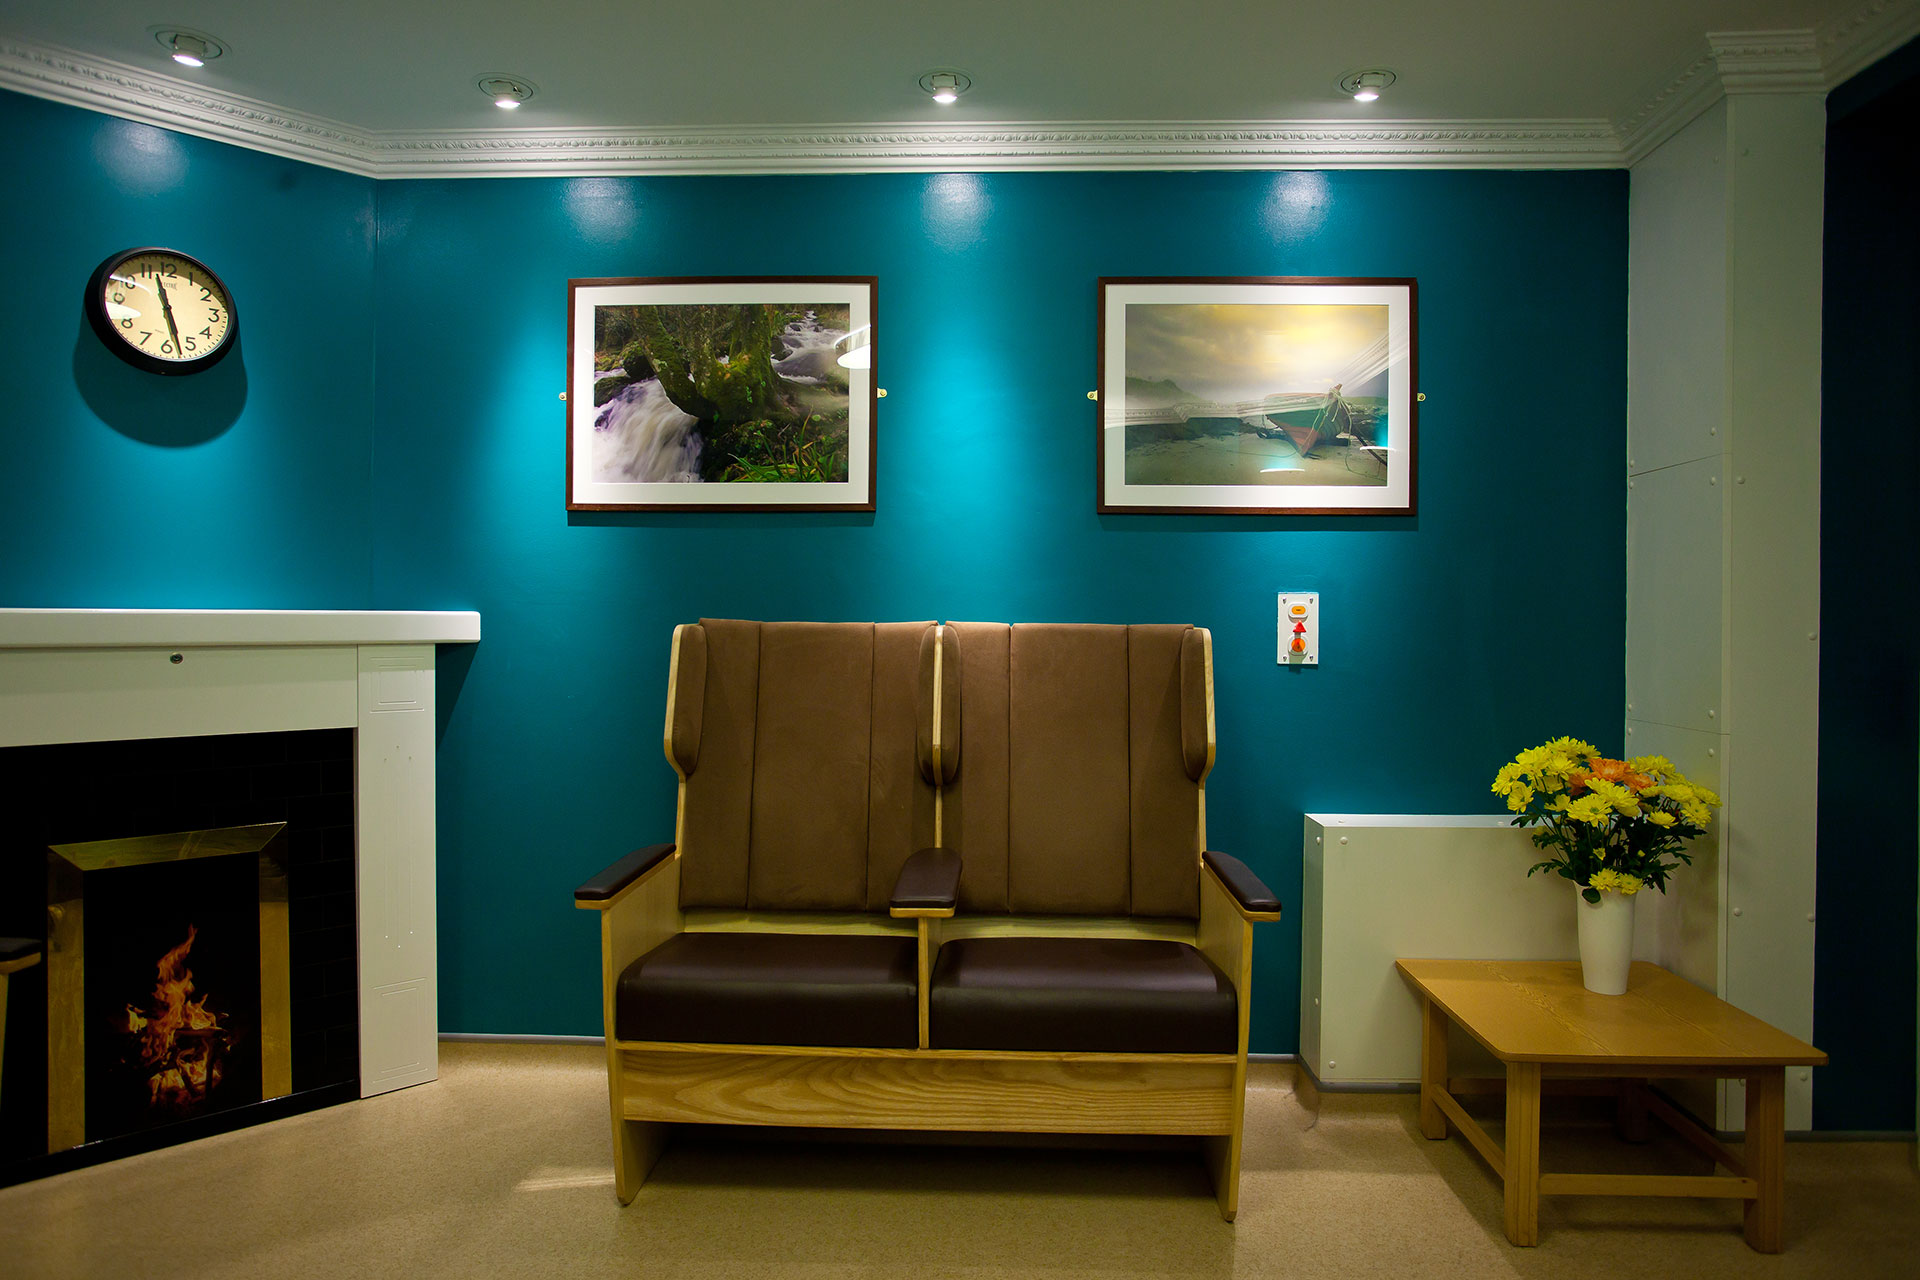 Dark seating upholstery to help the visually impaired patients at Cove Ward